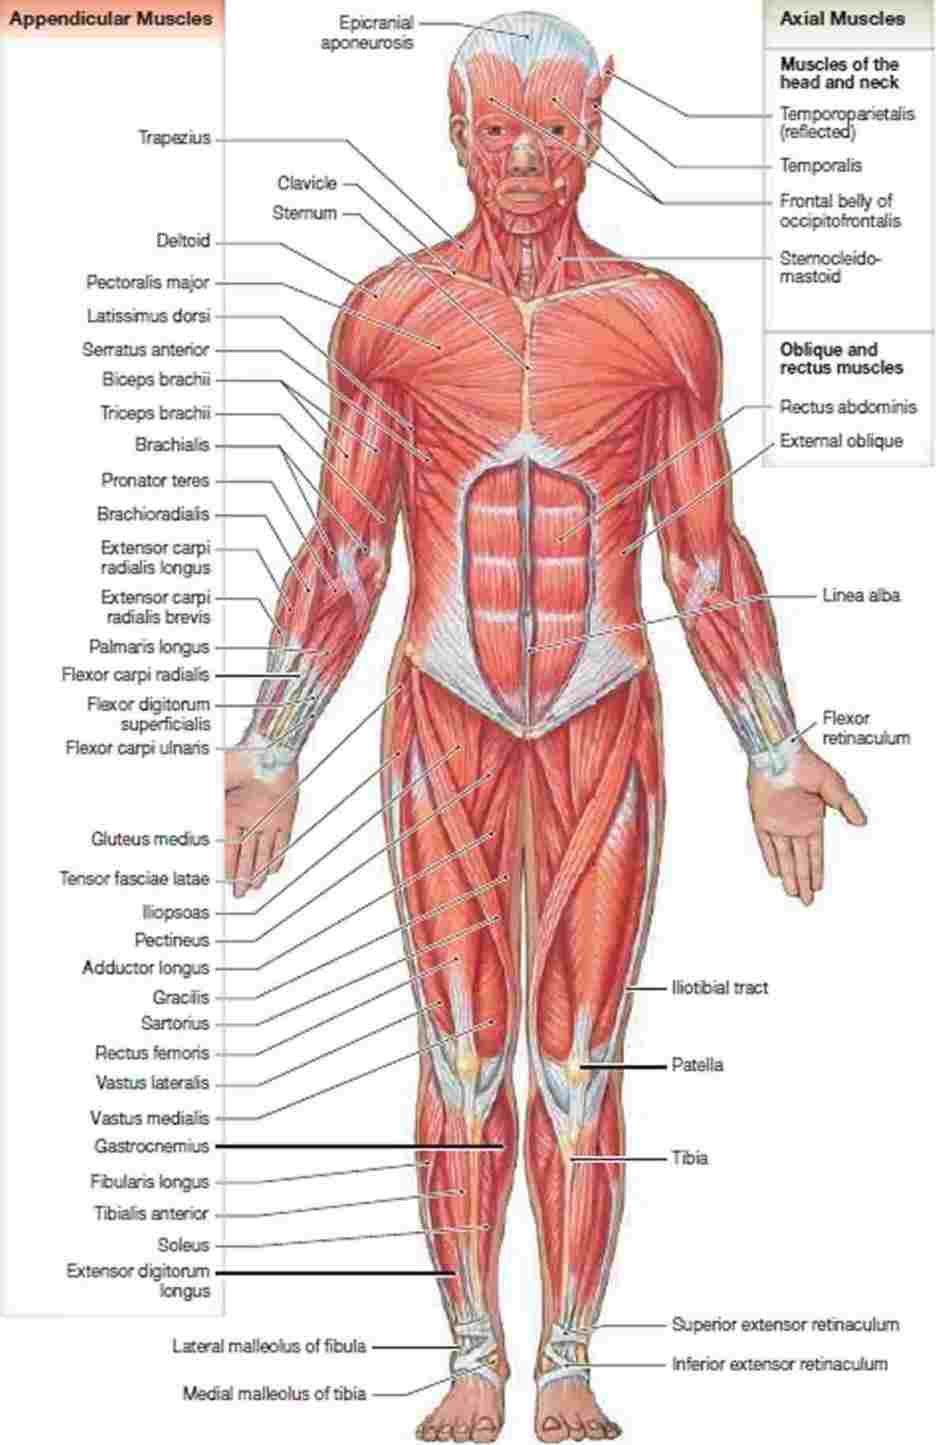 Human Muscle Diagram The Human Muscle Anatomy Diagram Of Anatomy